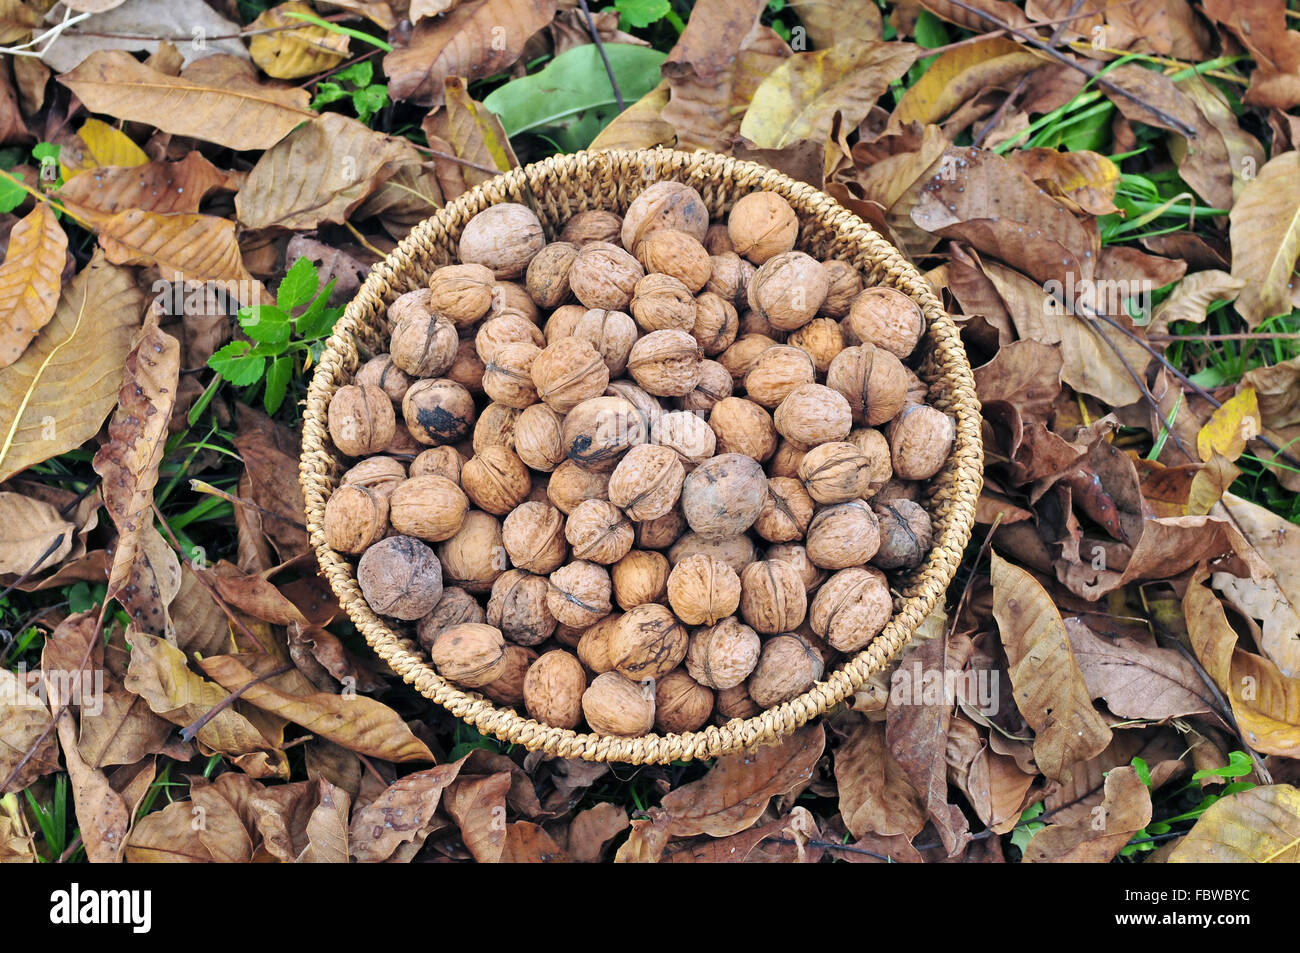 Harvested walnuts in a basket - Stock Image